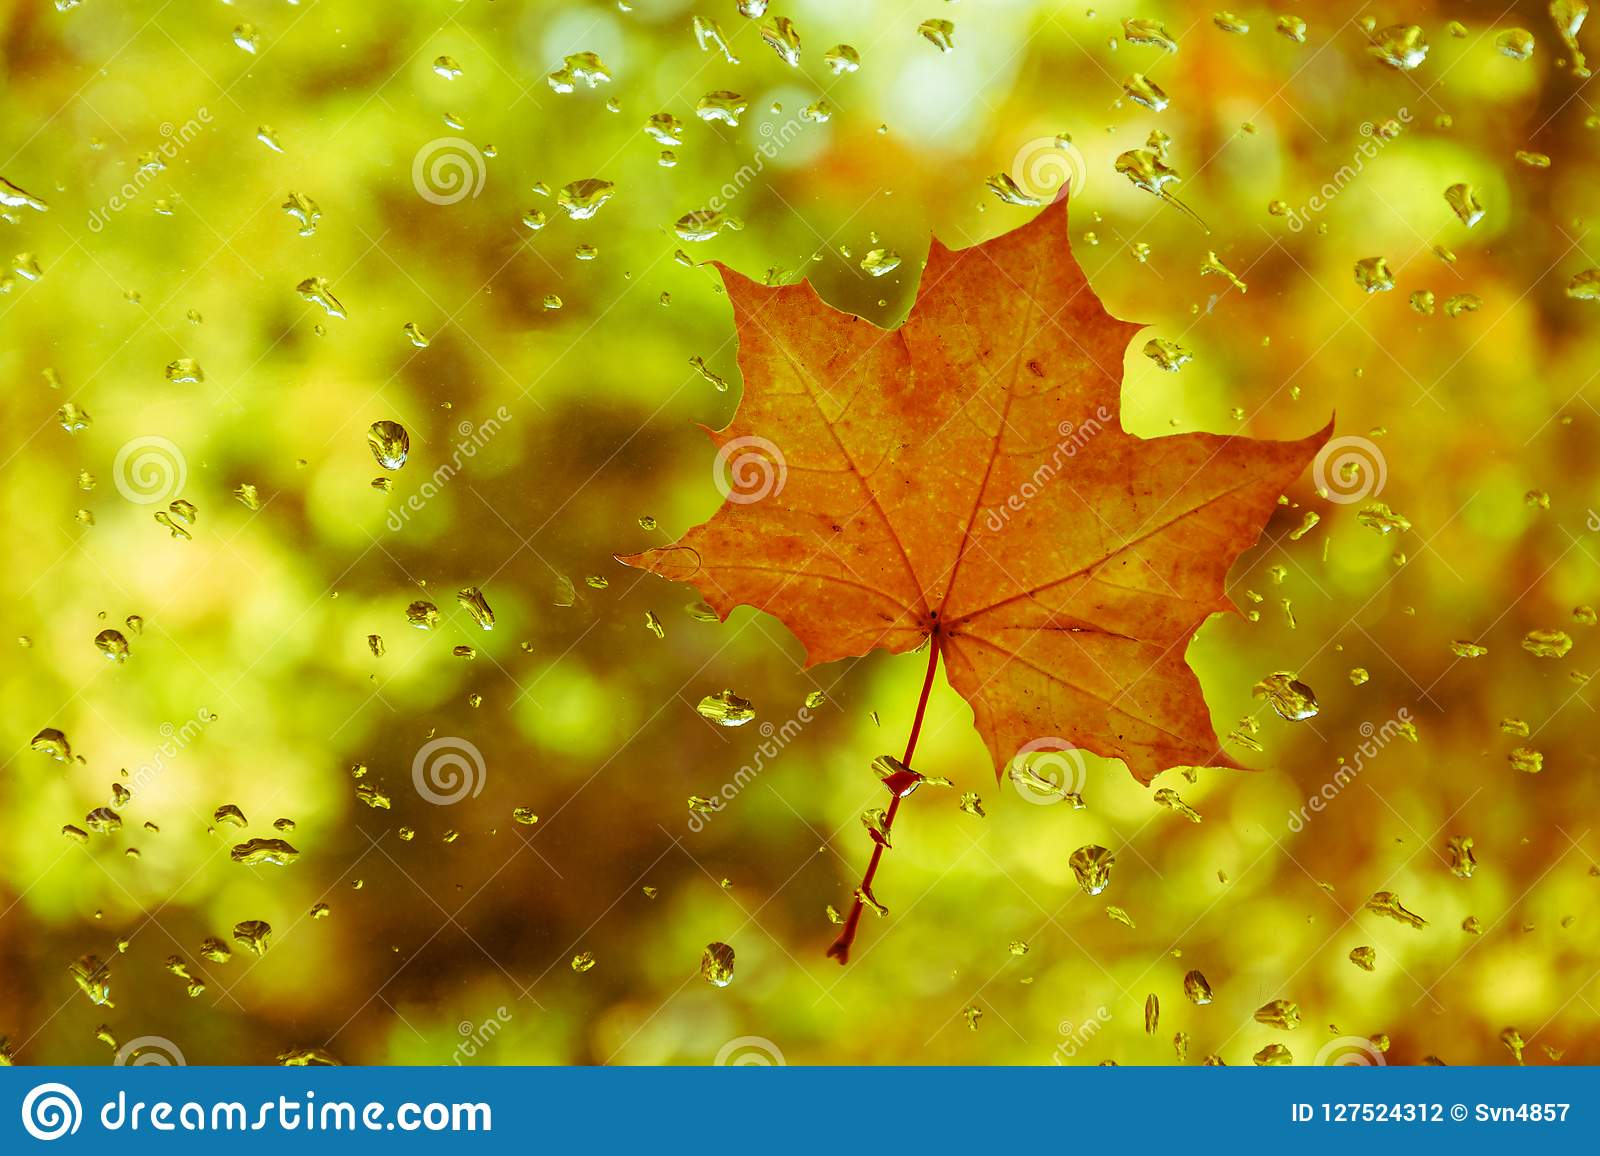 Red Yellow Leaf On The Glass With Water Drops Stock Photo